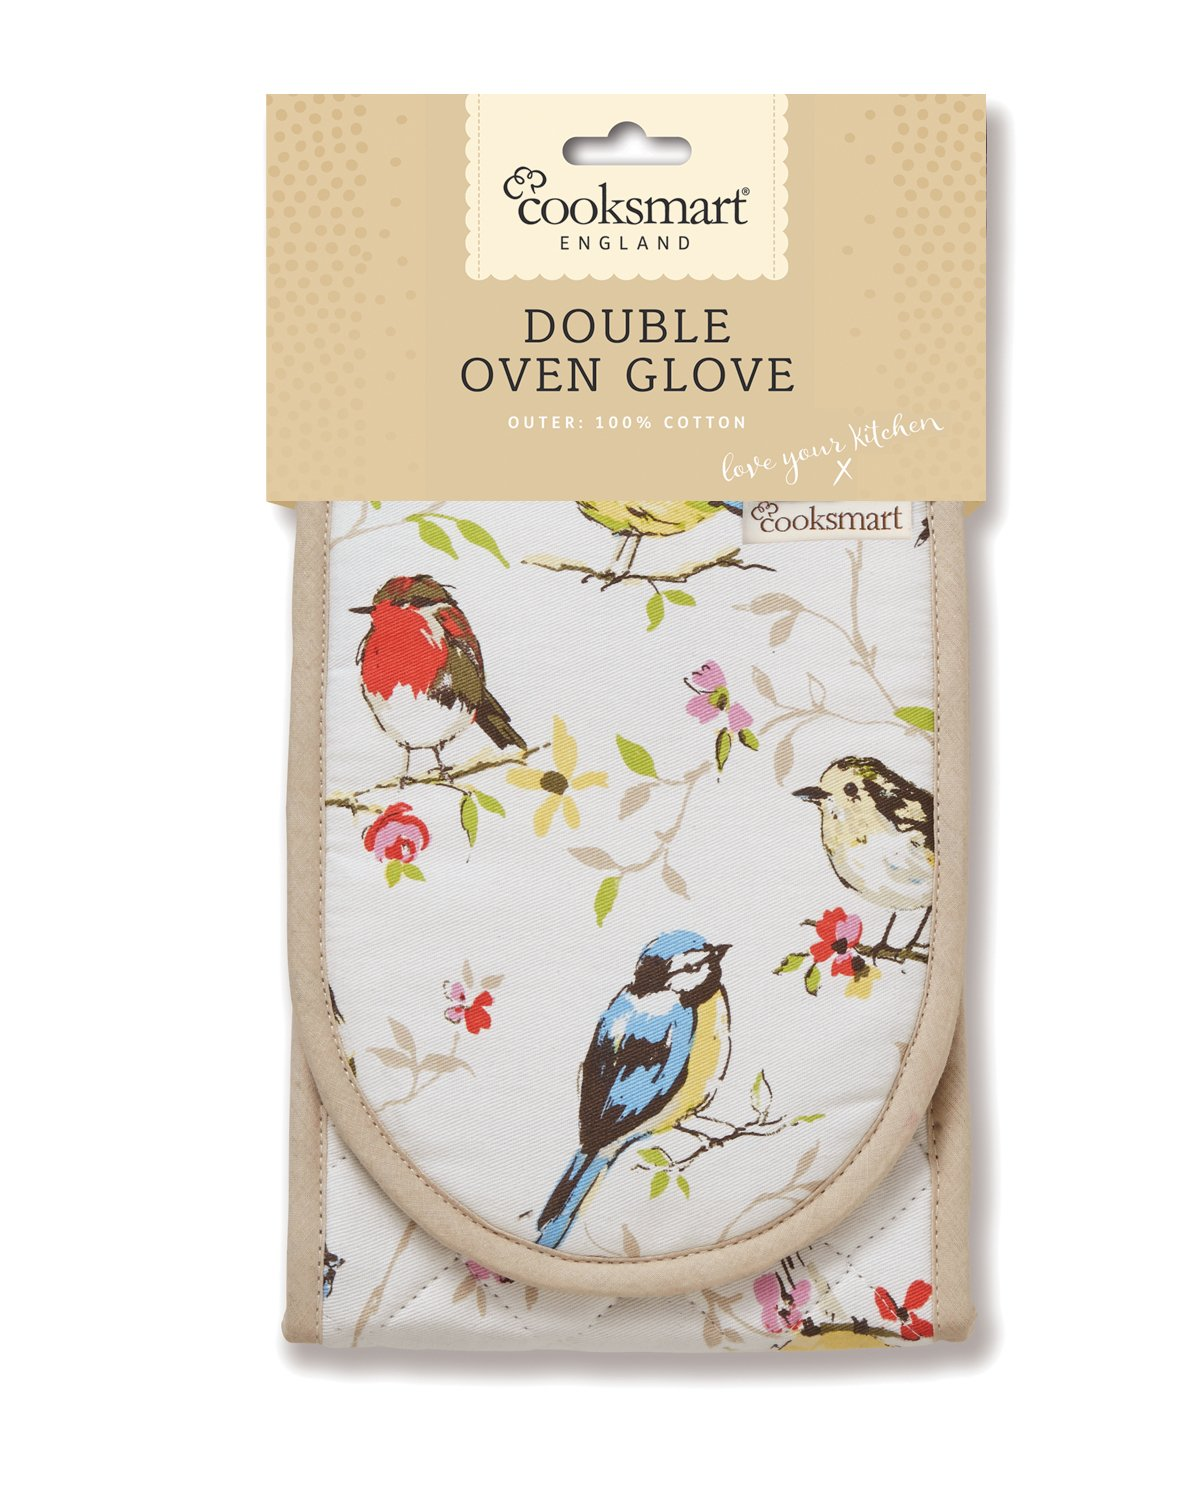 Cooksmart Dawn Chorus Double Oven Glove CITYLOOK IMPORTS LTD 9106